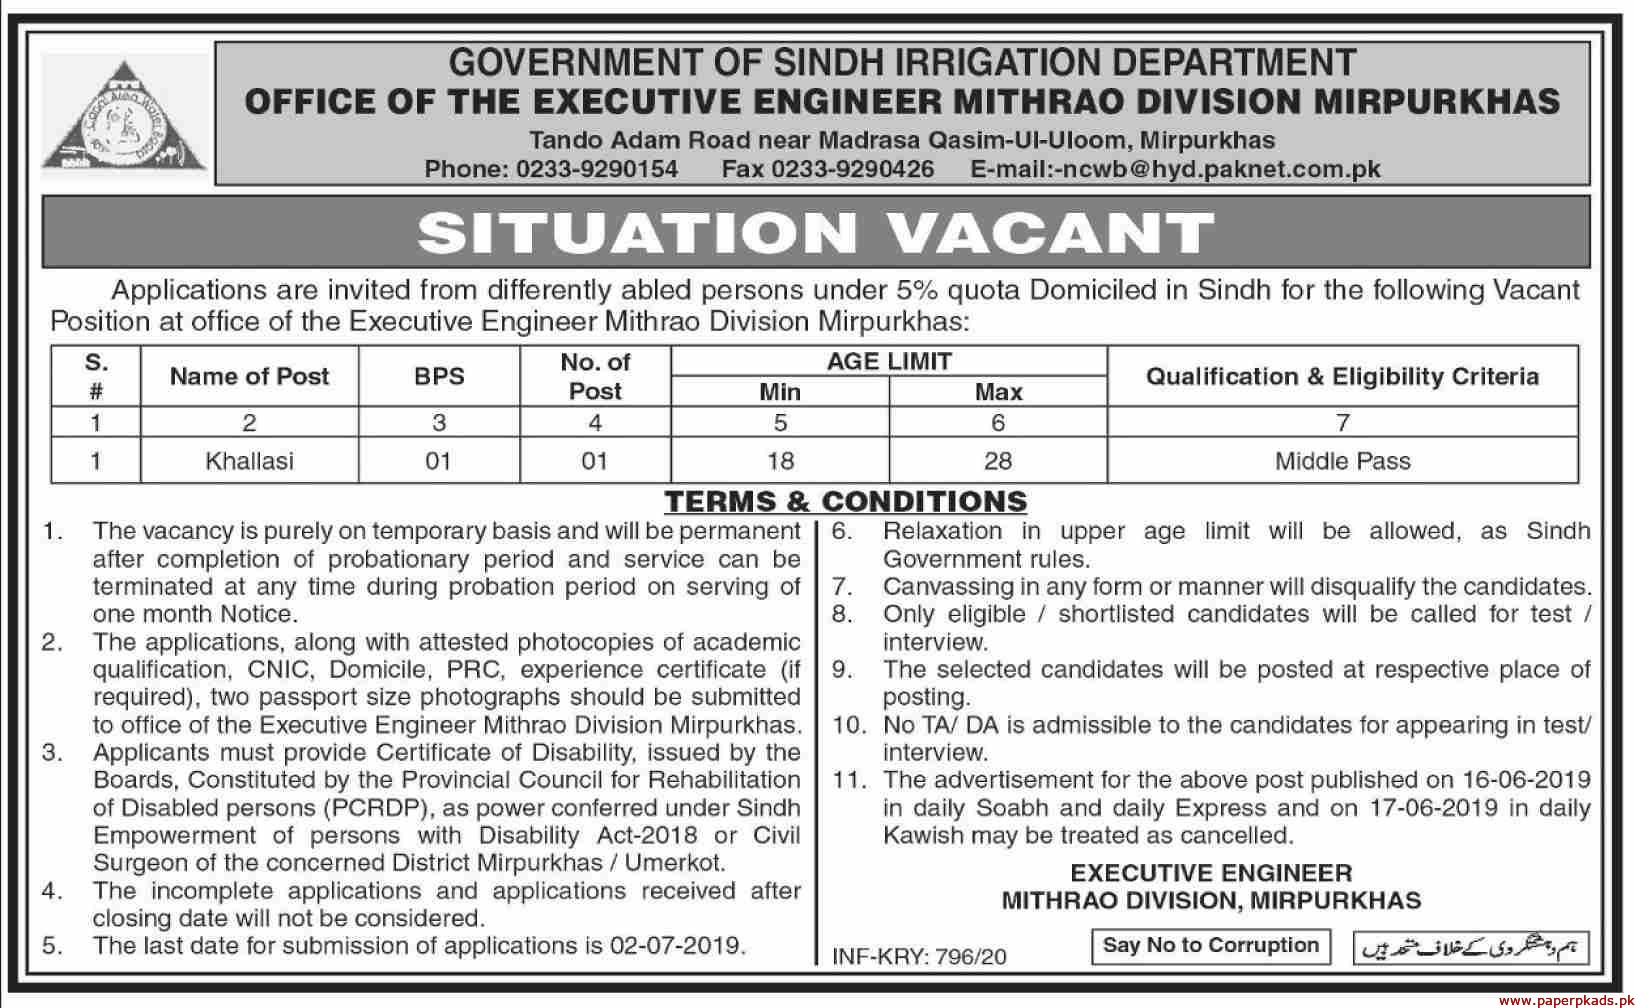 Irrigation Department Government of Sindh Jobs 2020 Latest